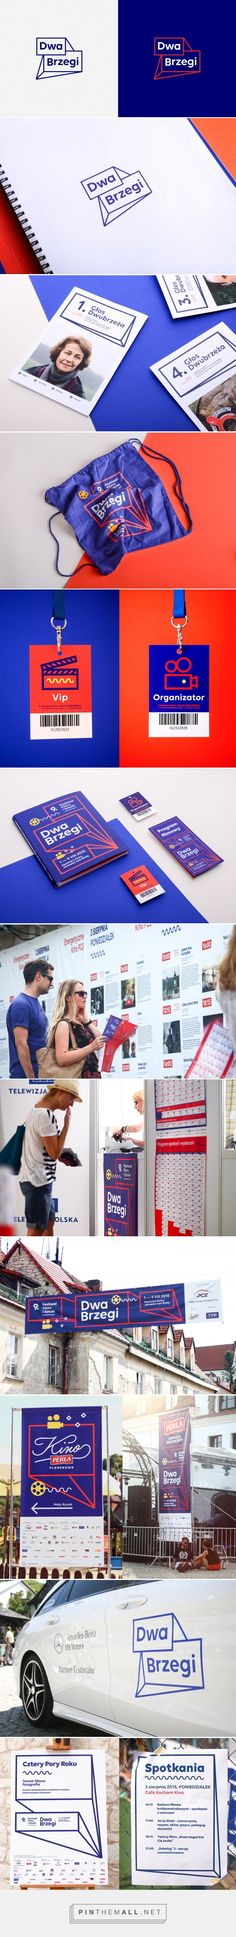 Dwa Brzegi - 9th Film and Art Festival on Behance